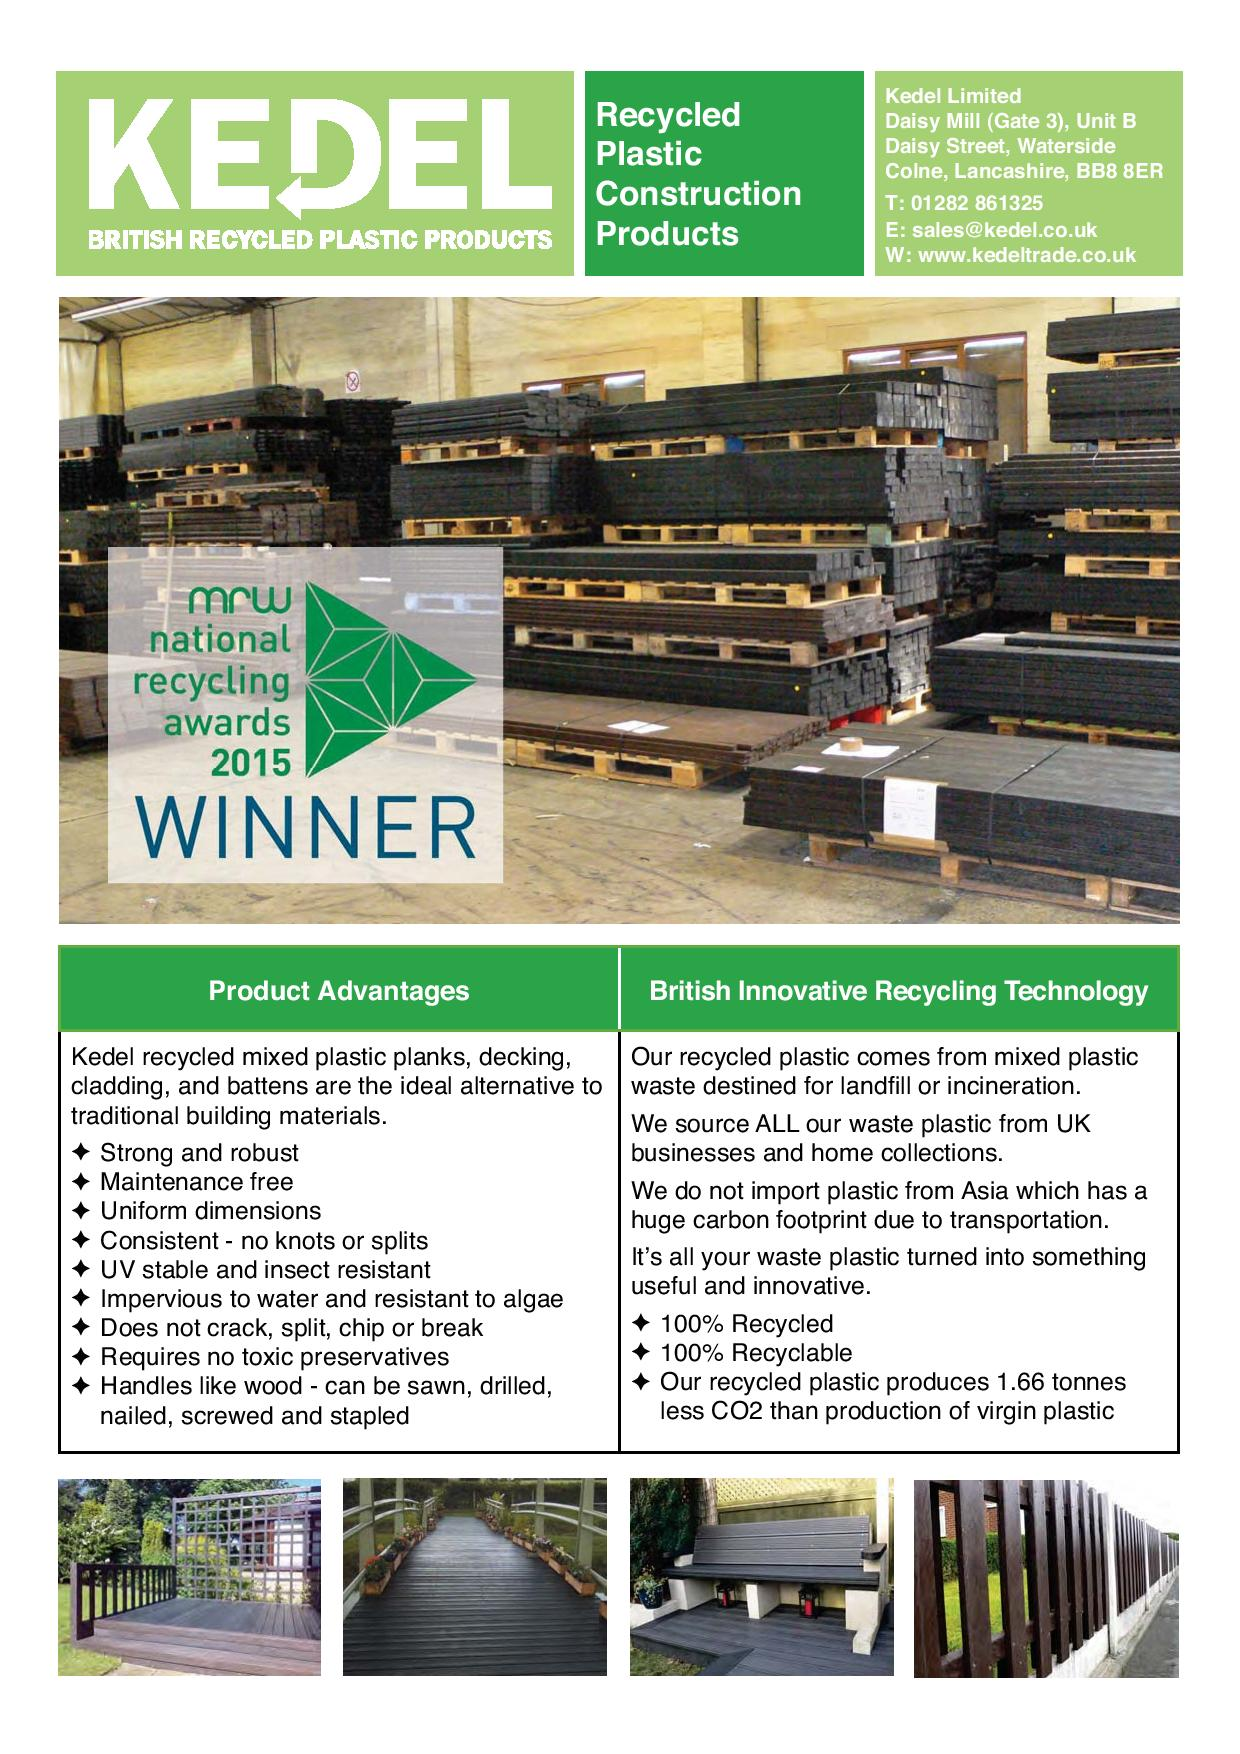 Mixed plastic lumber key advantages & product range leaflet